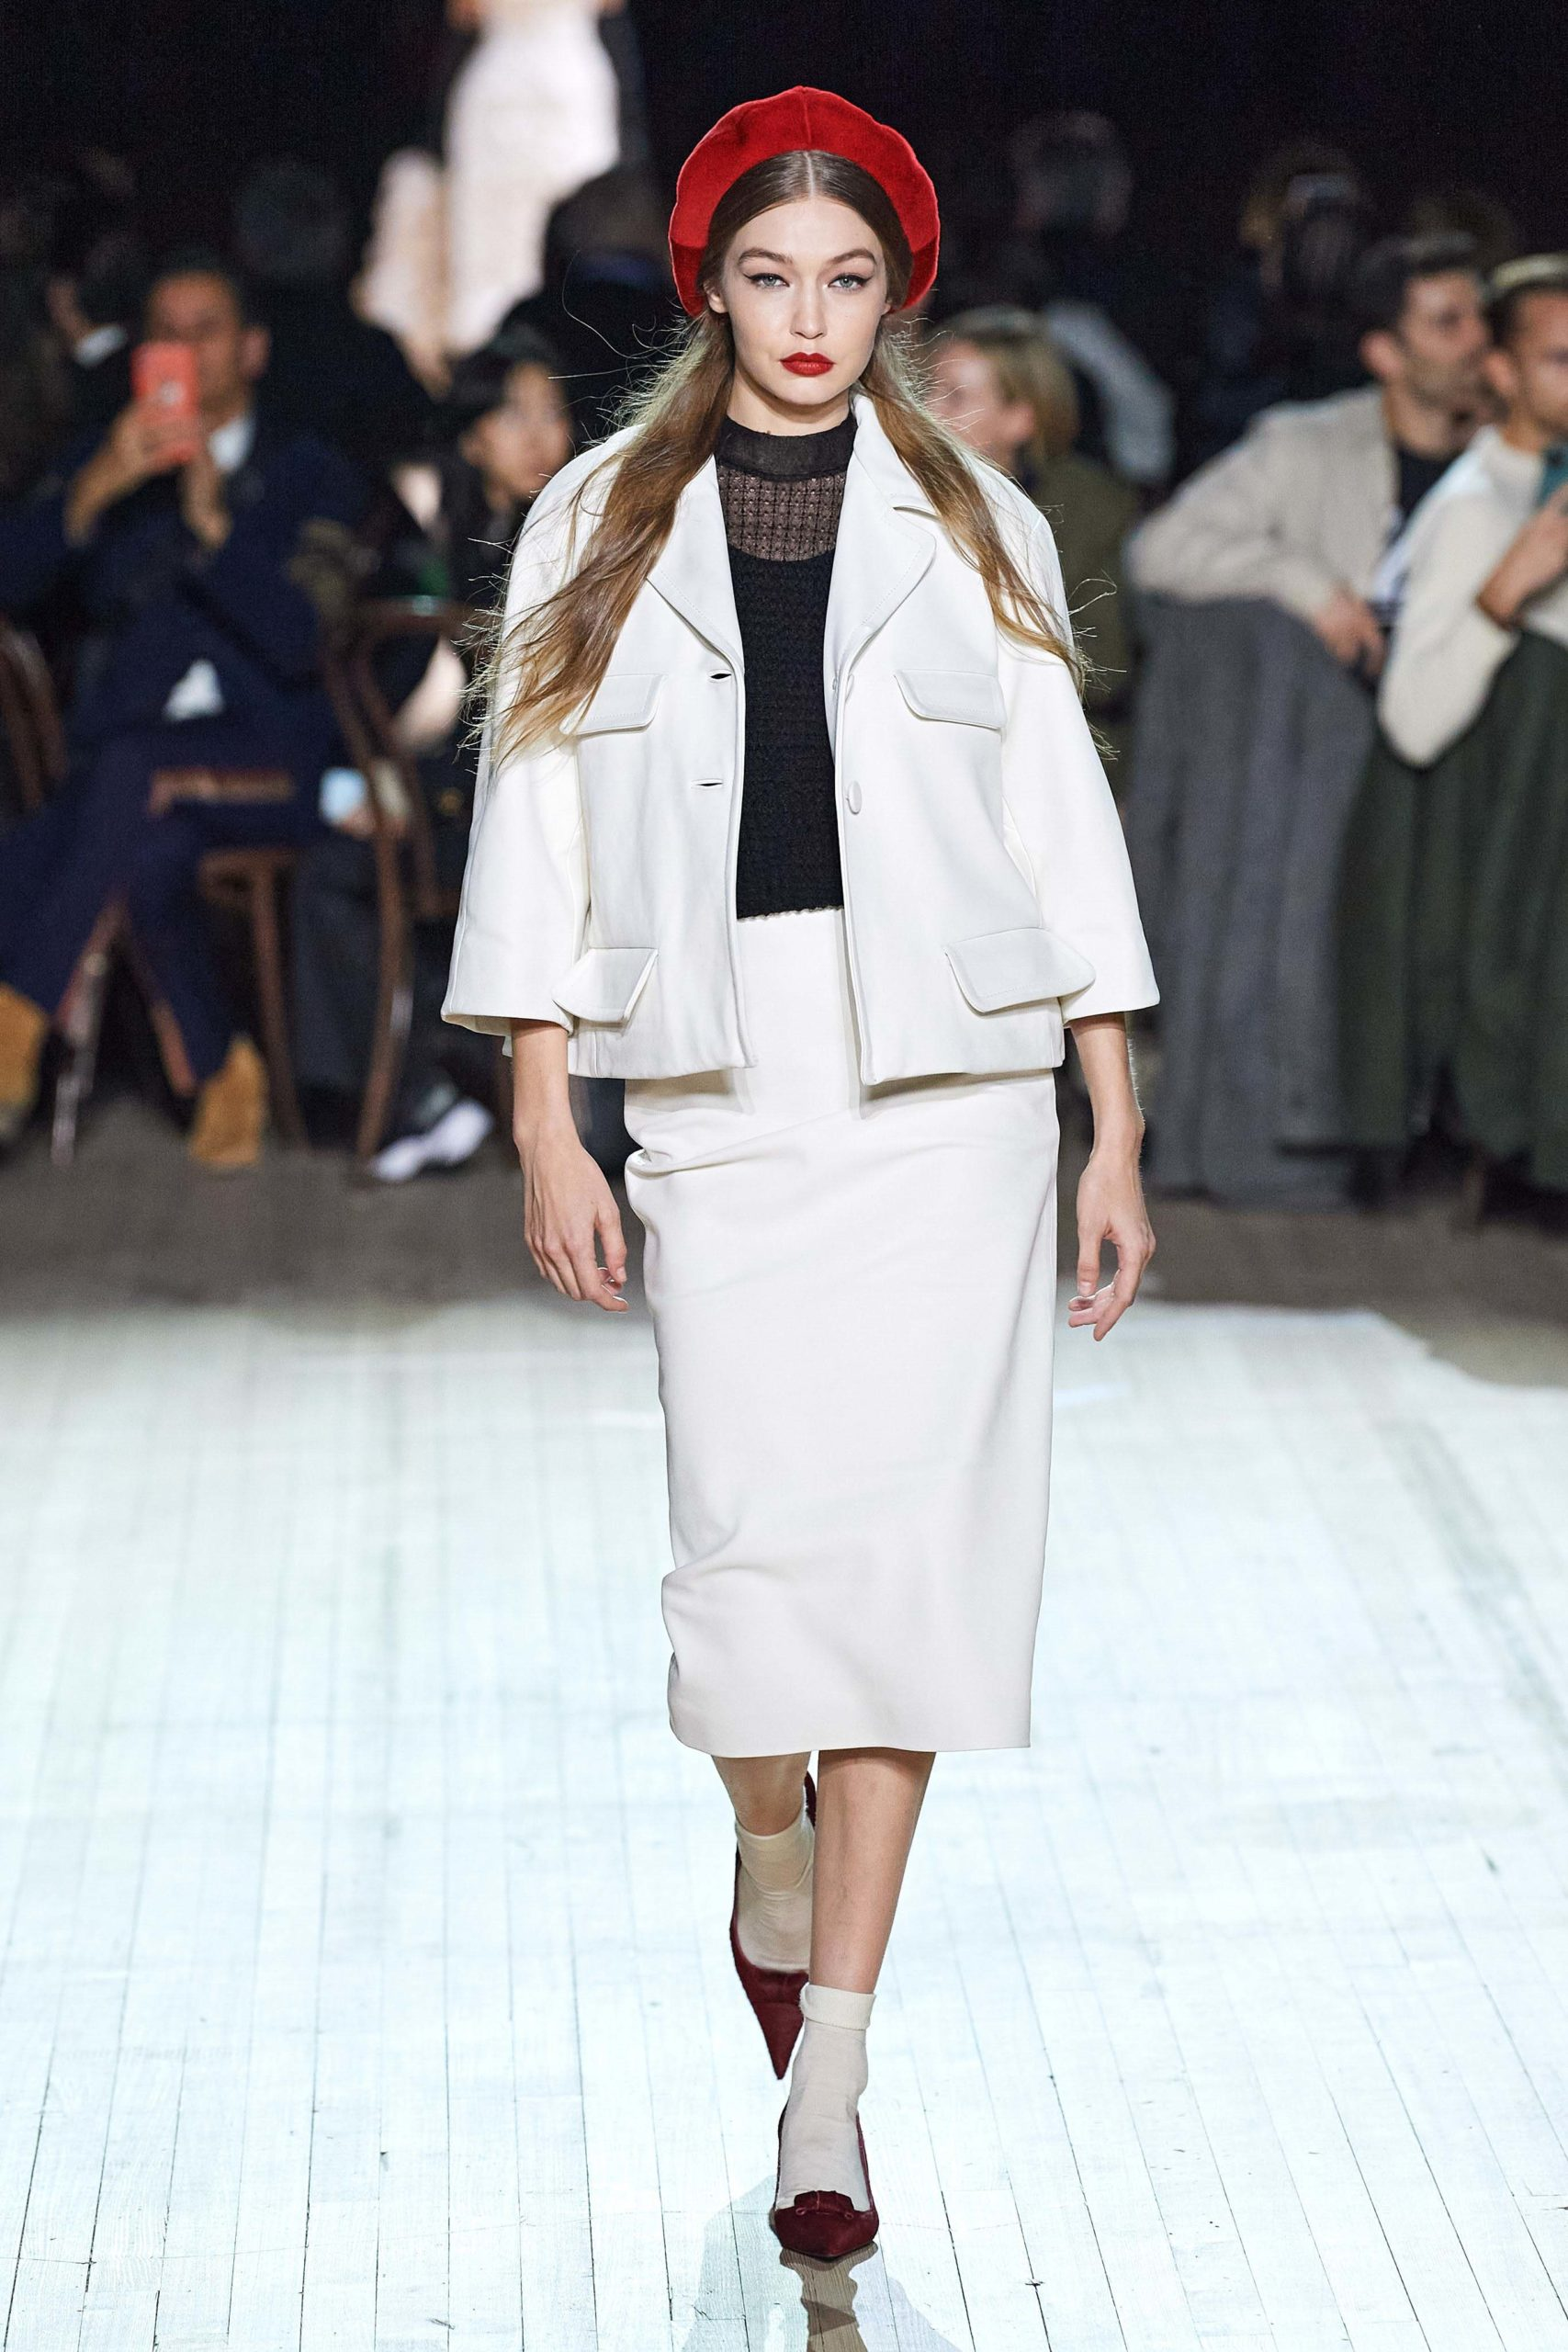 Marc Jacobs Fall 2020 trends runway coverage Ready To Wear Vogue tailleur jupe skirt suit